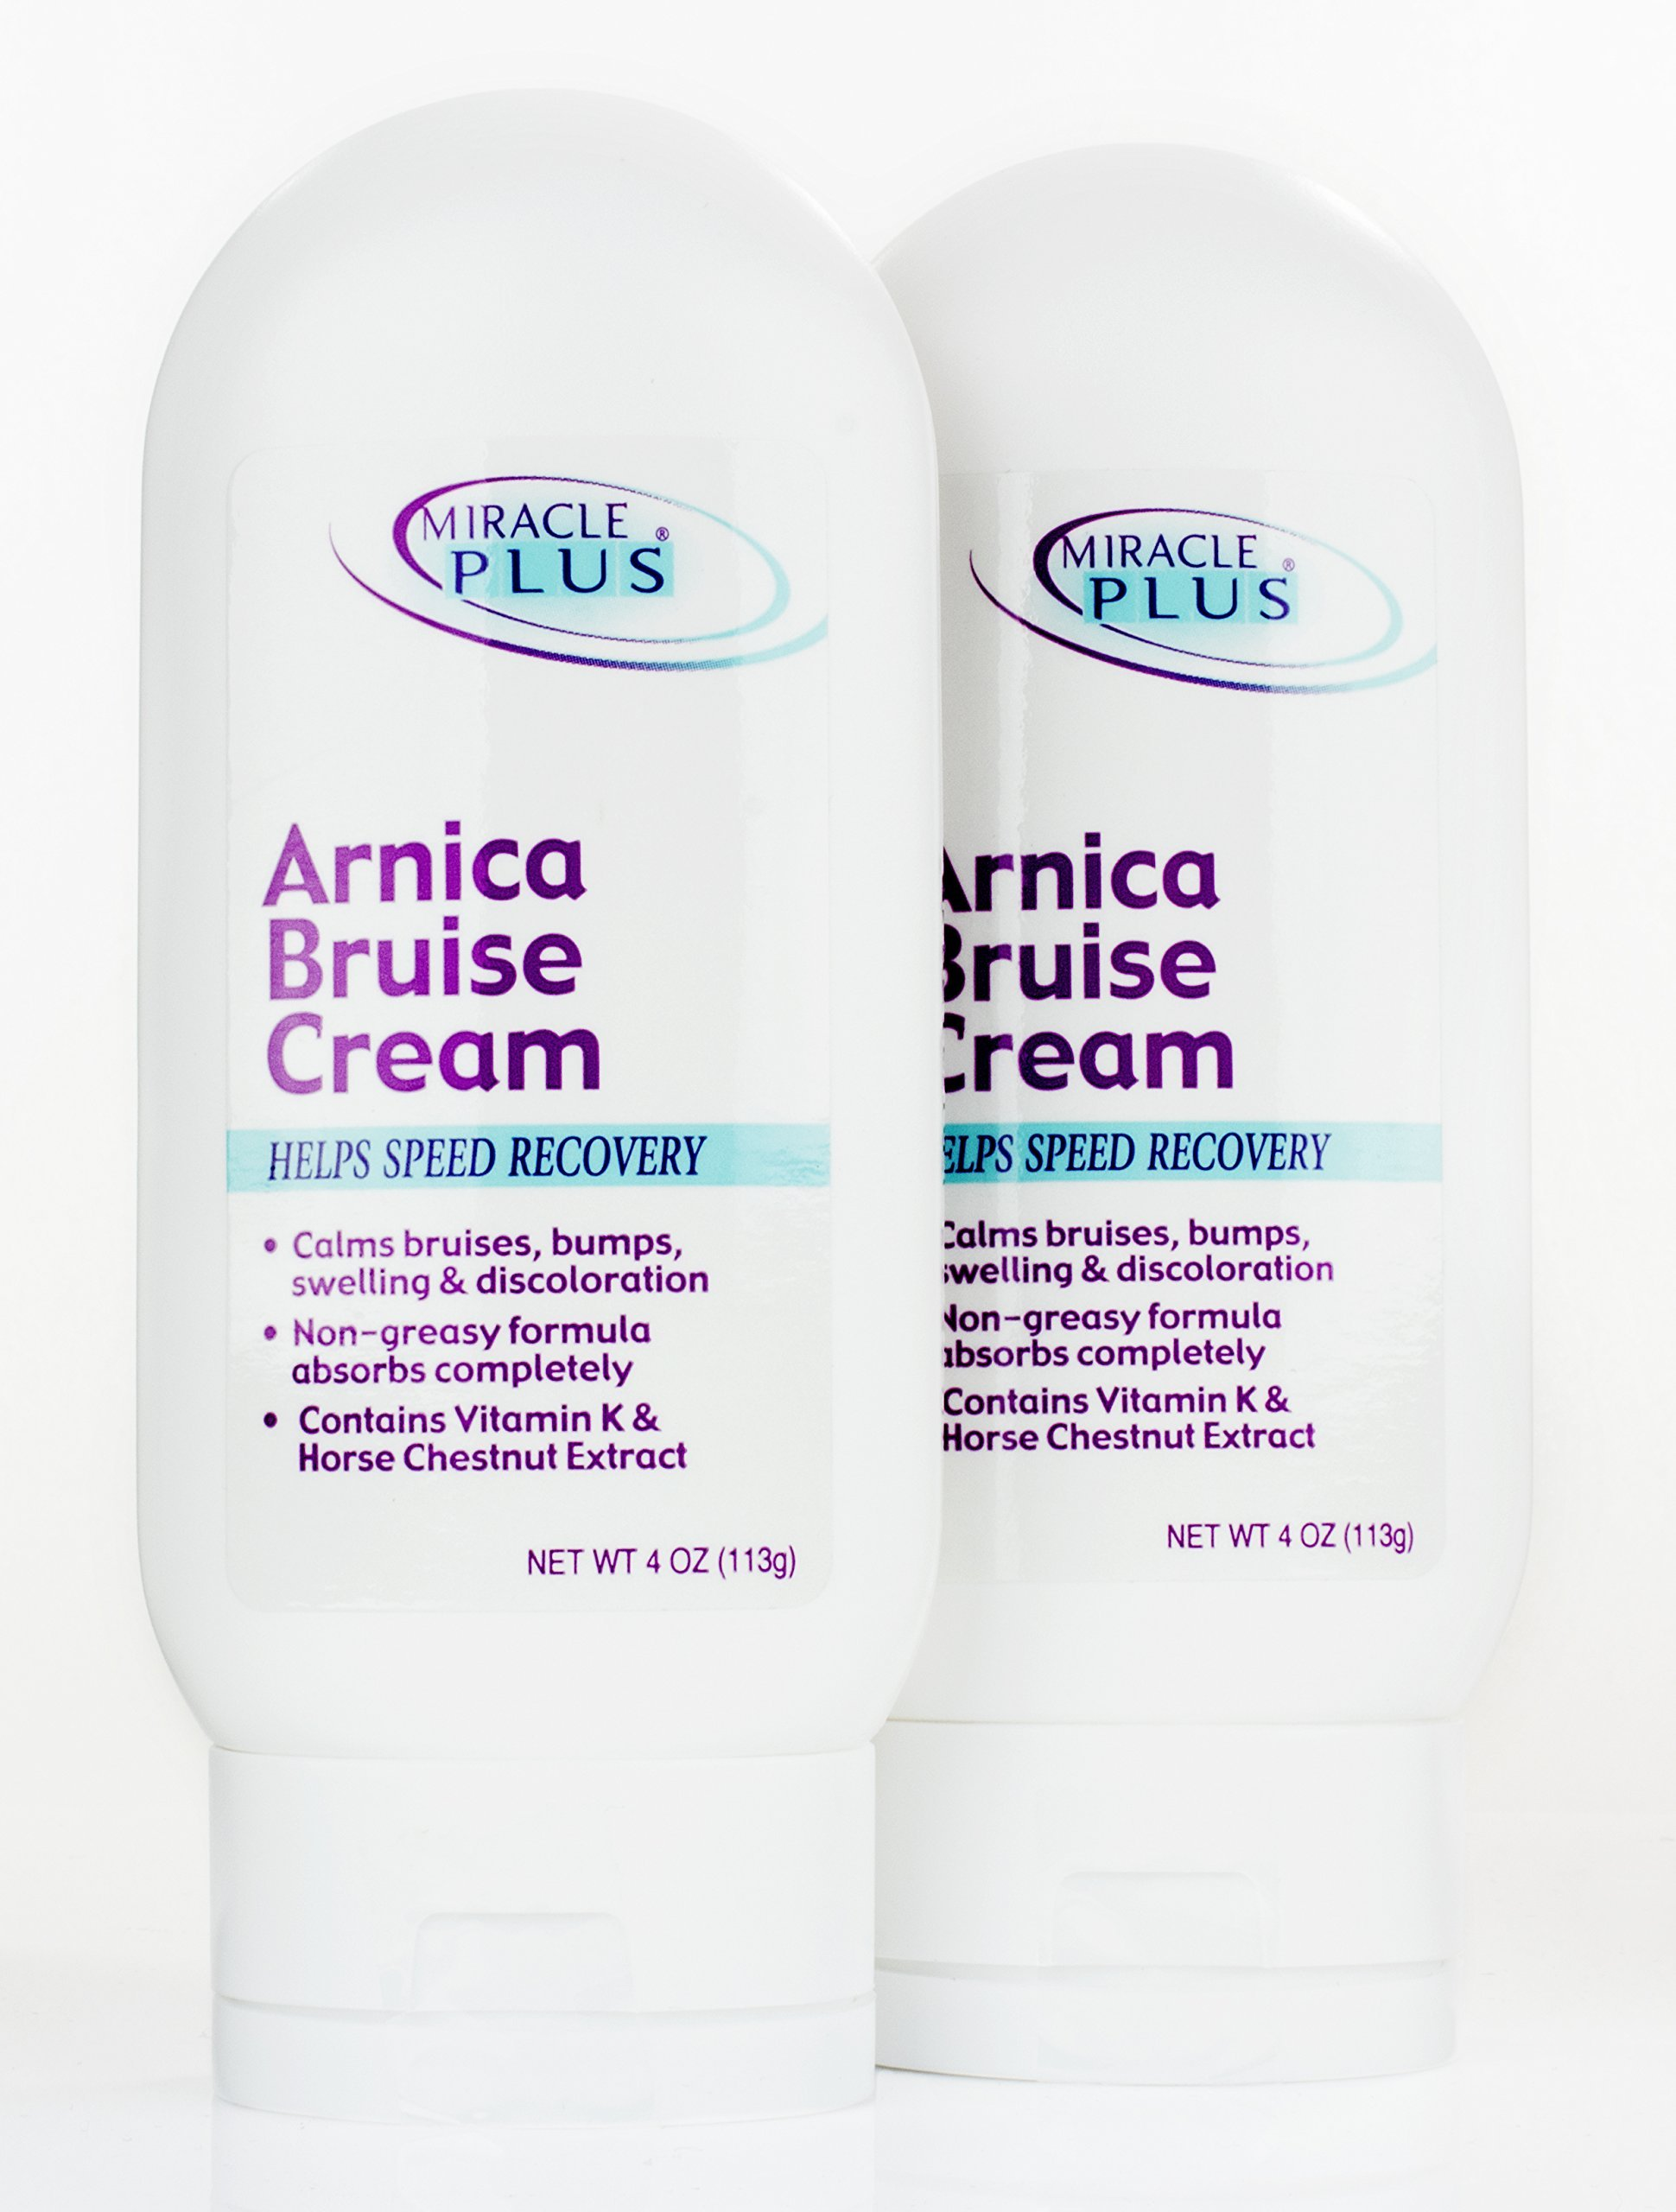 Miracle Plus Arnica Bruise Cream for bruising, swelling, discoloration. (Two - 4oz)